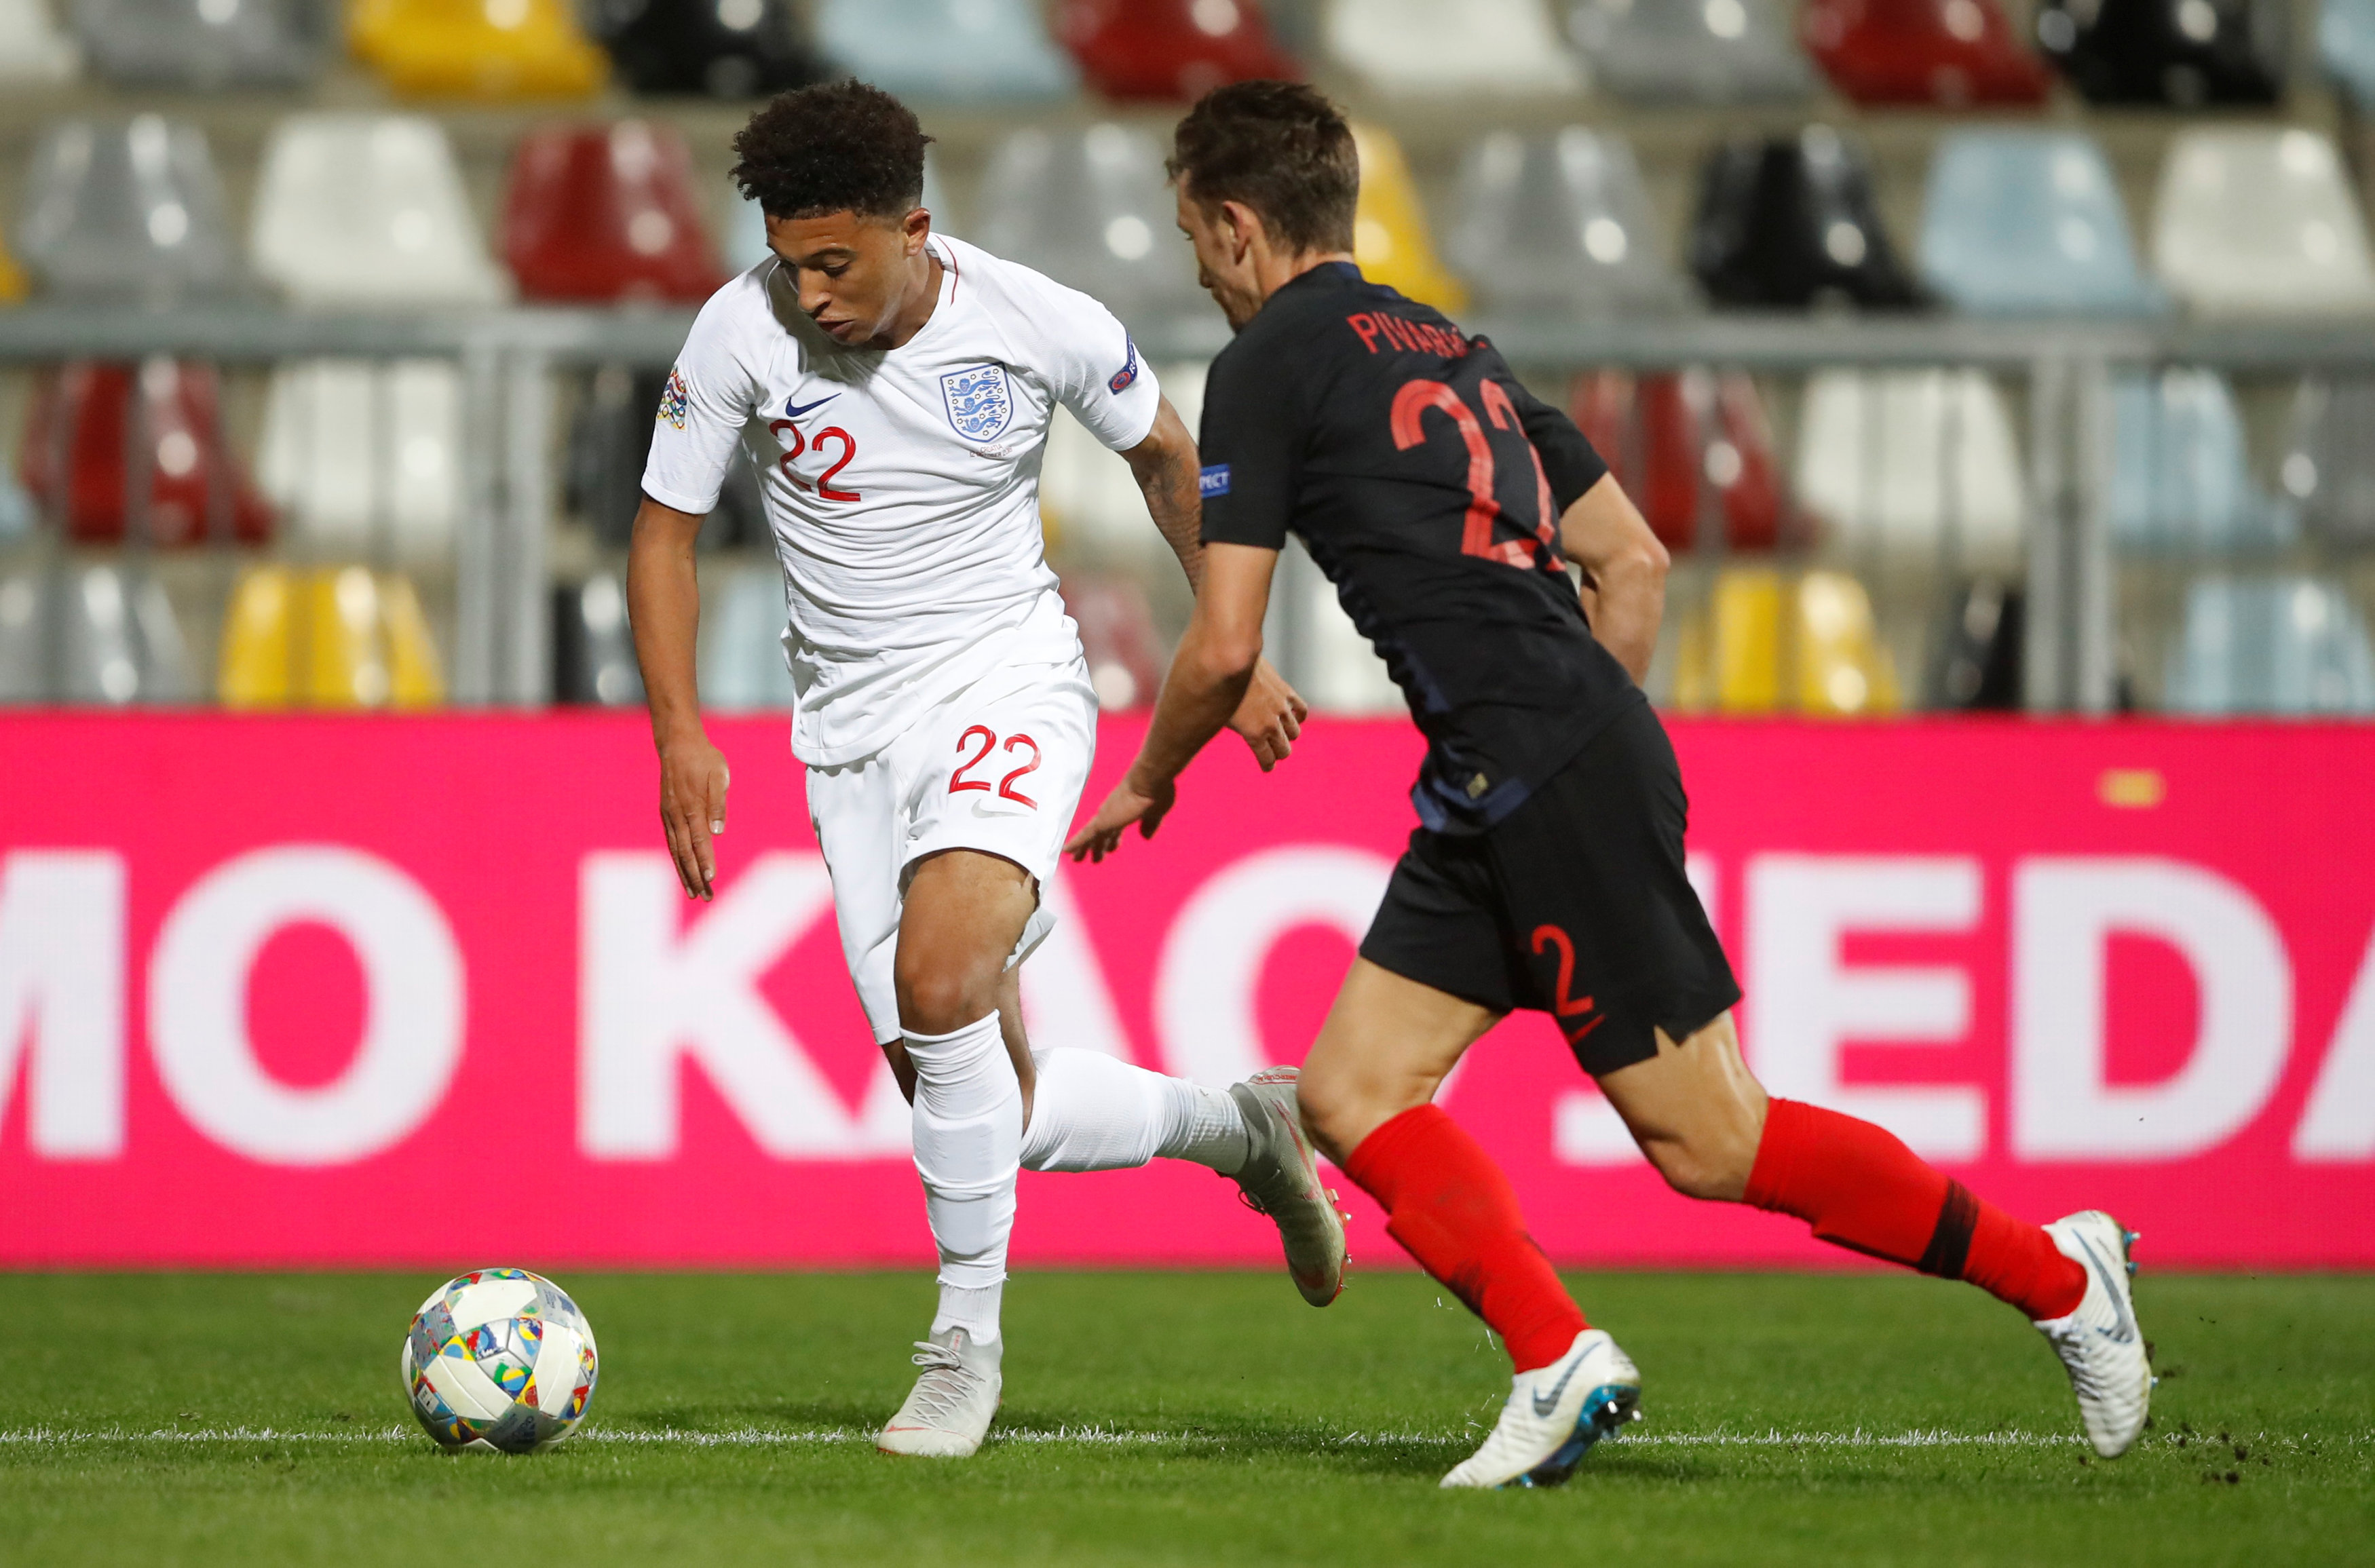 Football: Teenager Sancho impresses England team mates in brief debut